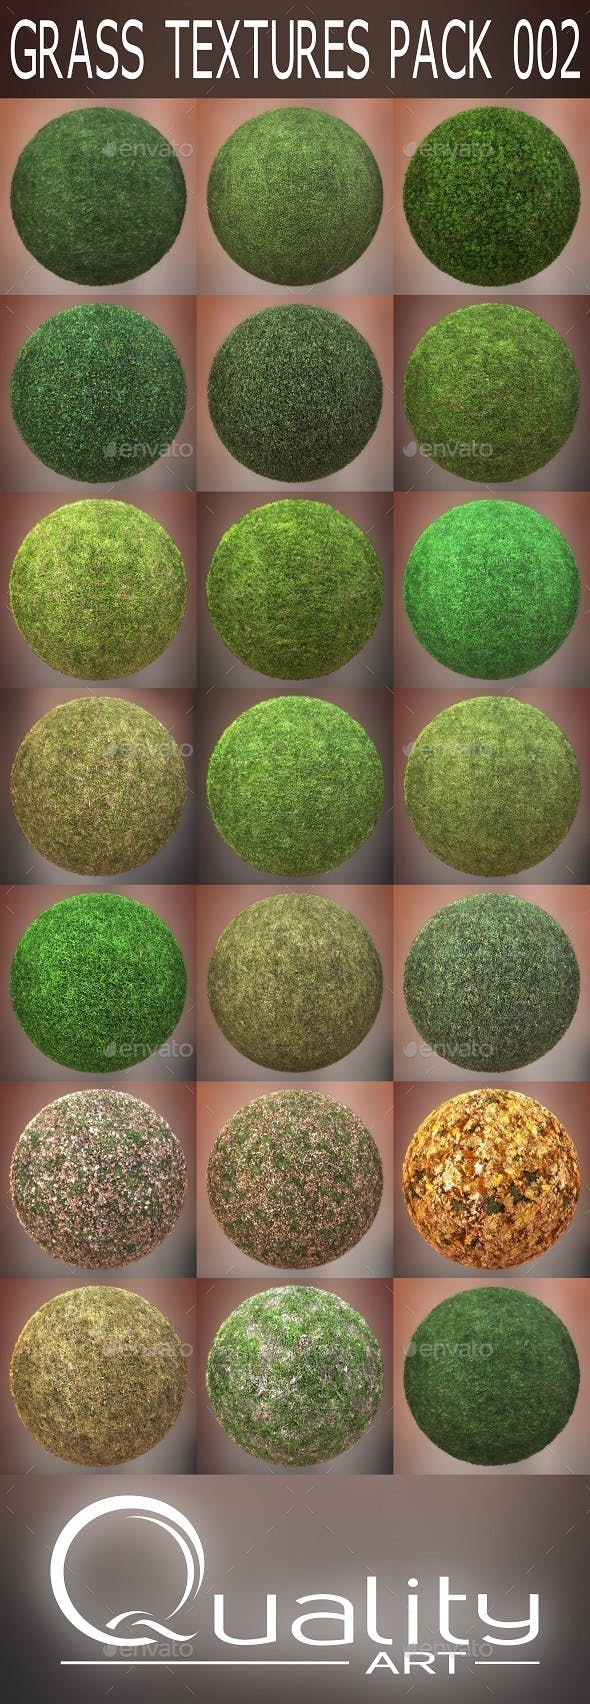 Grass Textures Pack 002 - 3DOcean Item for Sale